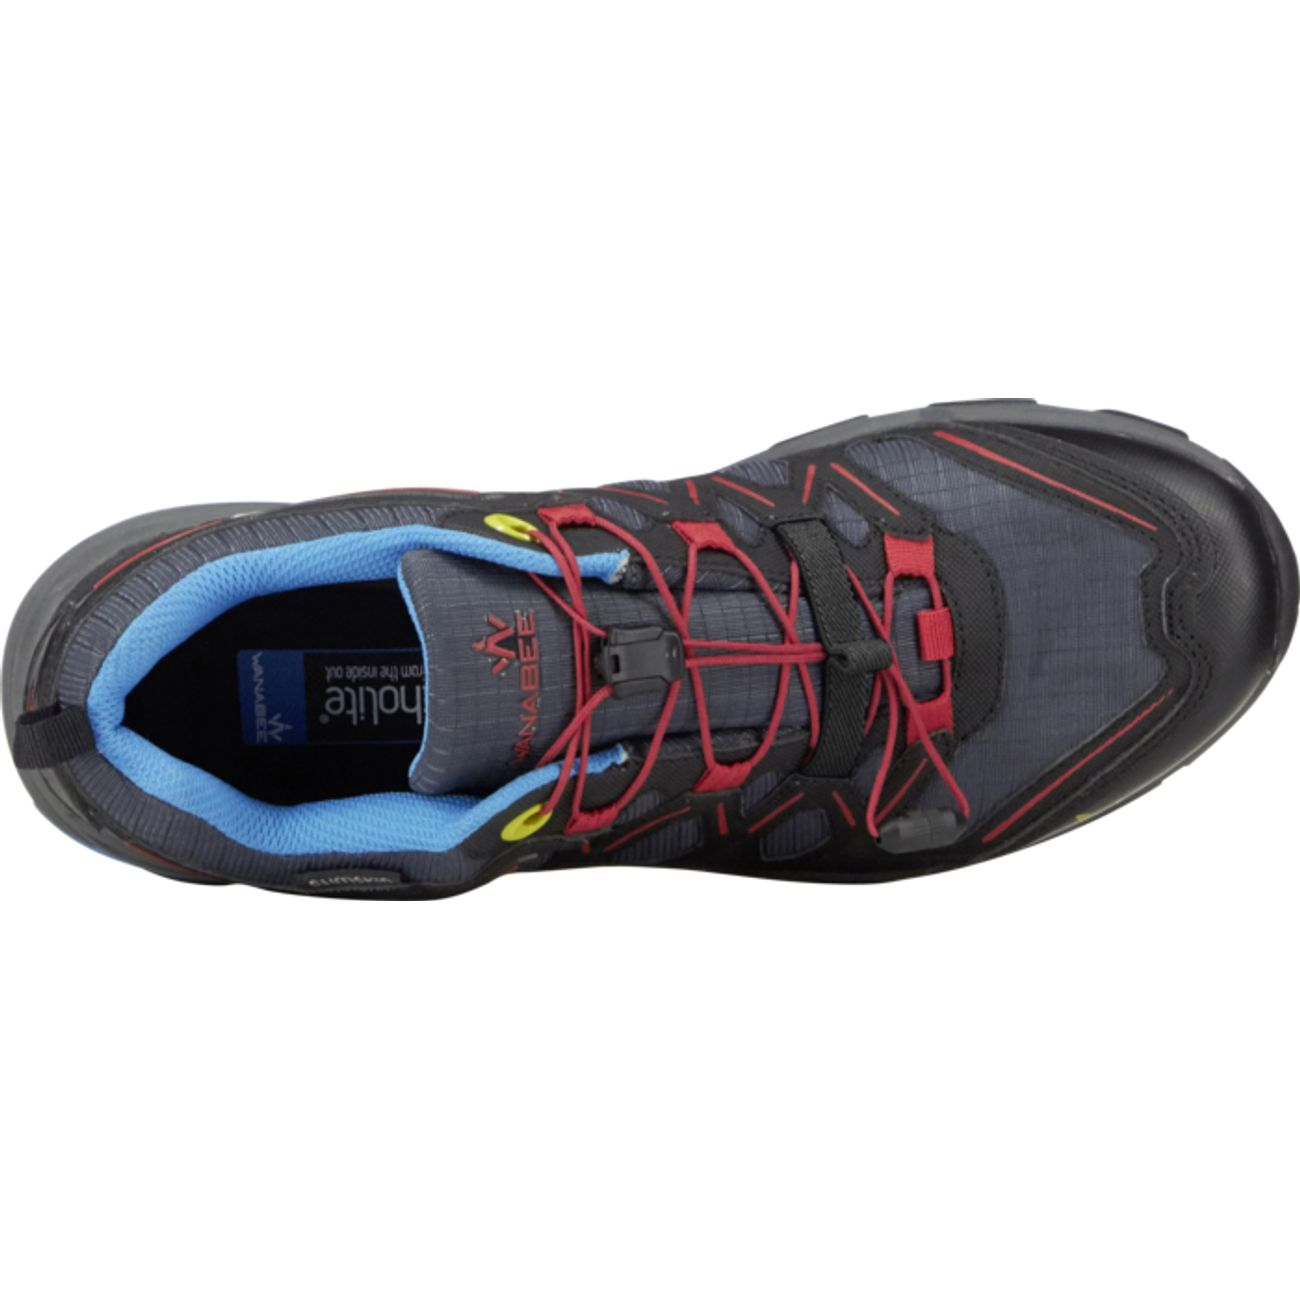 CHAUSSURES Fast Hiking homme WANABEE ACTIV 300 CS